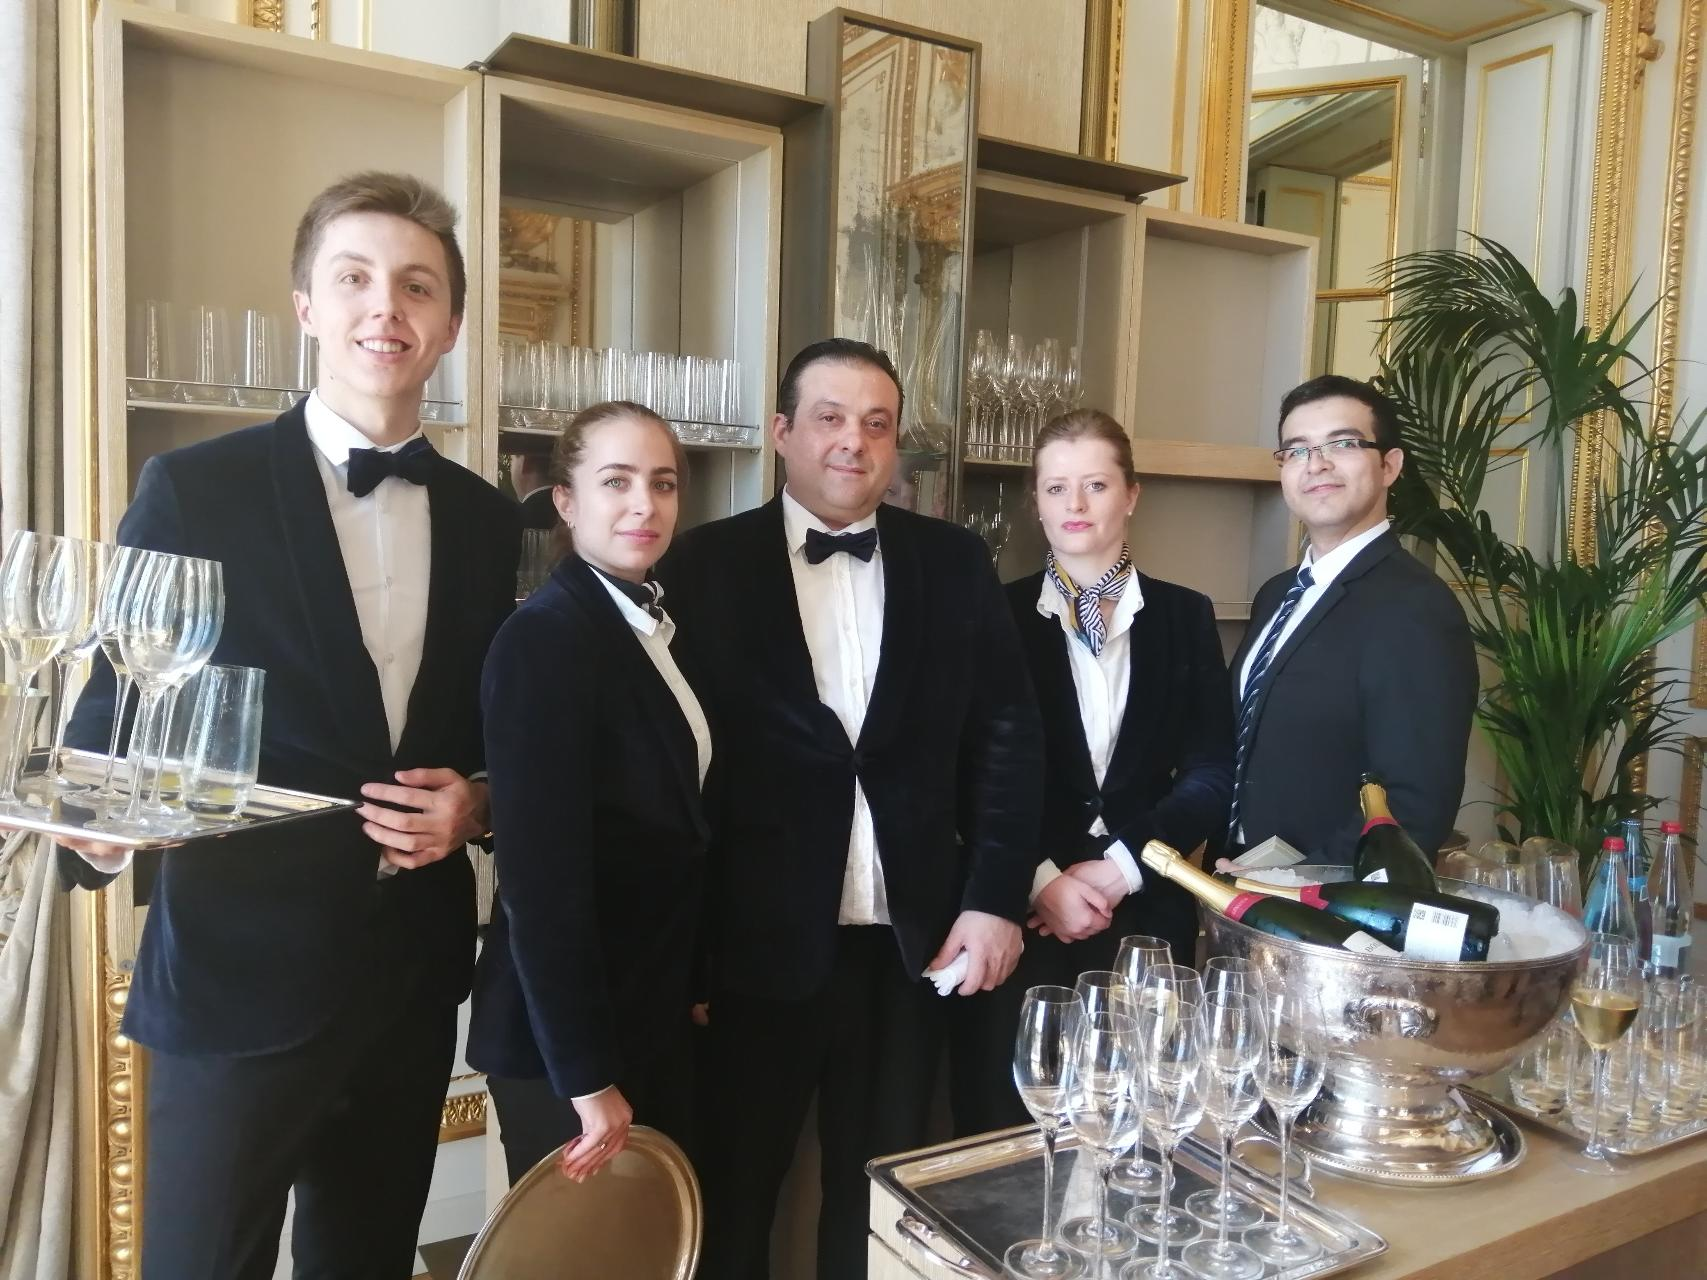 Hotel de Crillon, Rosewood two year celebration event with staff (source LinkedIn)